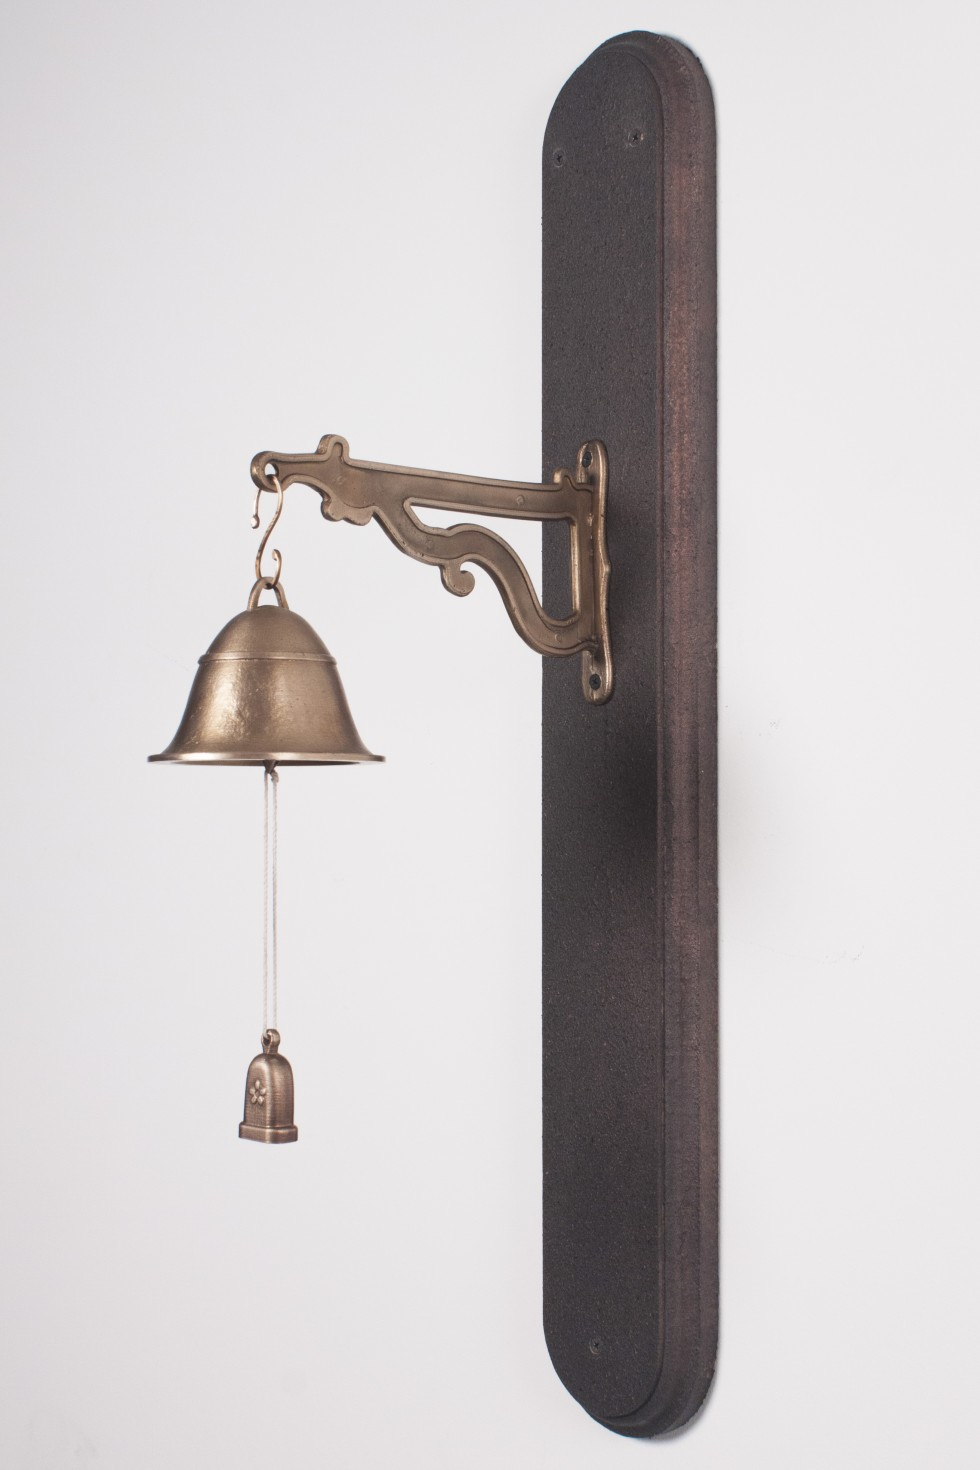 Bell (Artifact I) features a cast bronze bell which hangs from a bronze cast mount. The mount is attached to a rough gray oblong plinth on the wall. From the inside of the bell, a small pulley handle hangs from a string, allowing the user of the bell to r